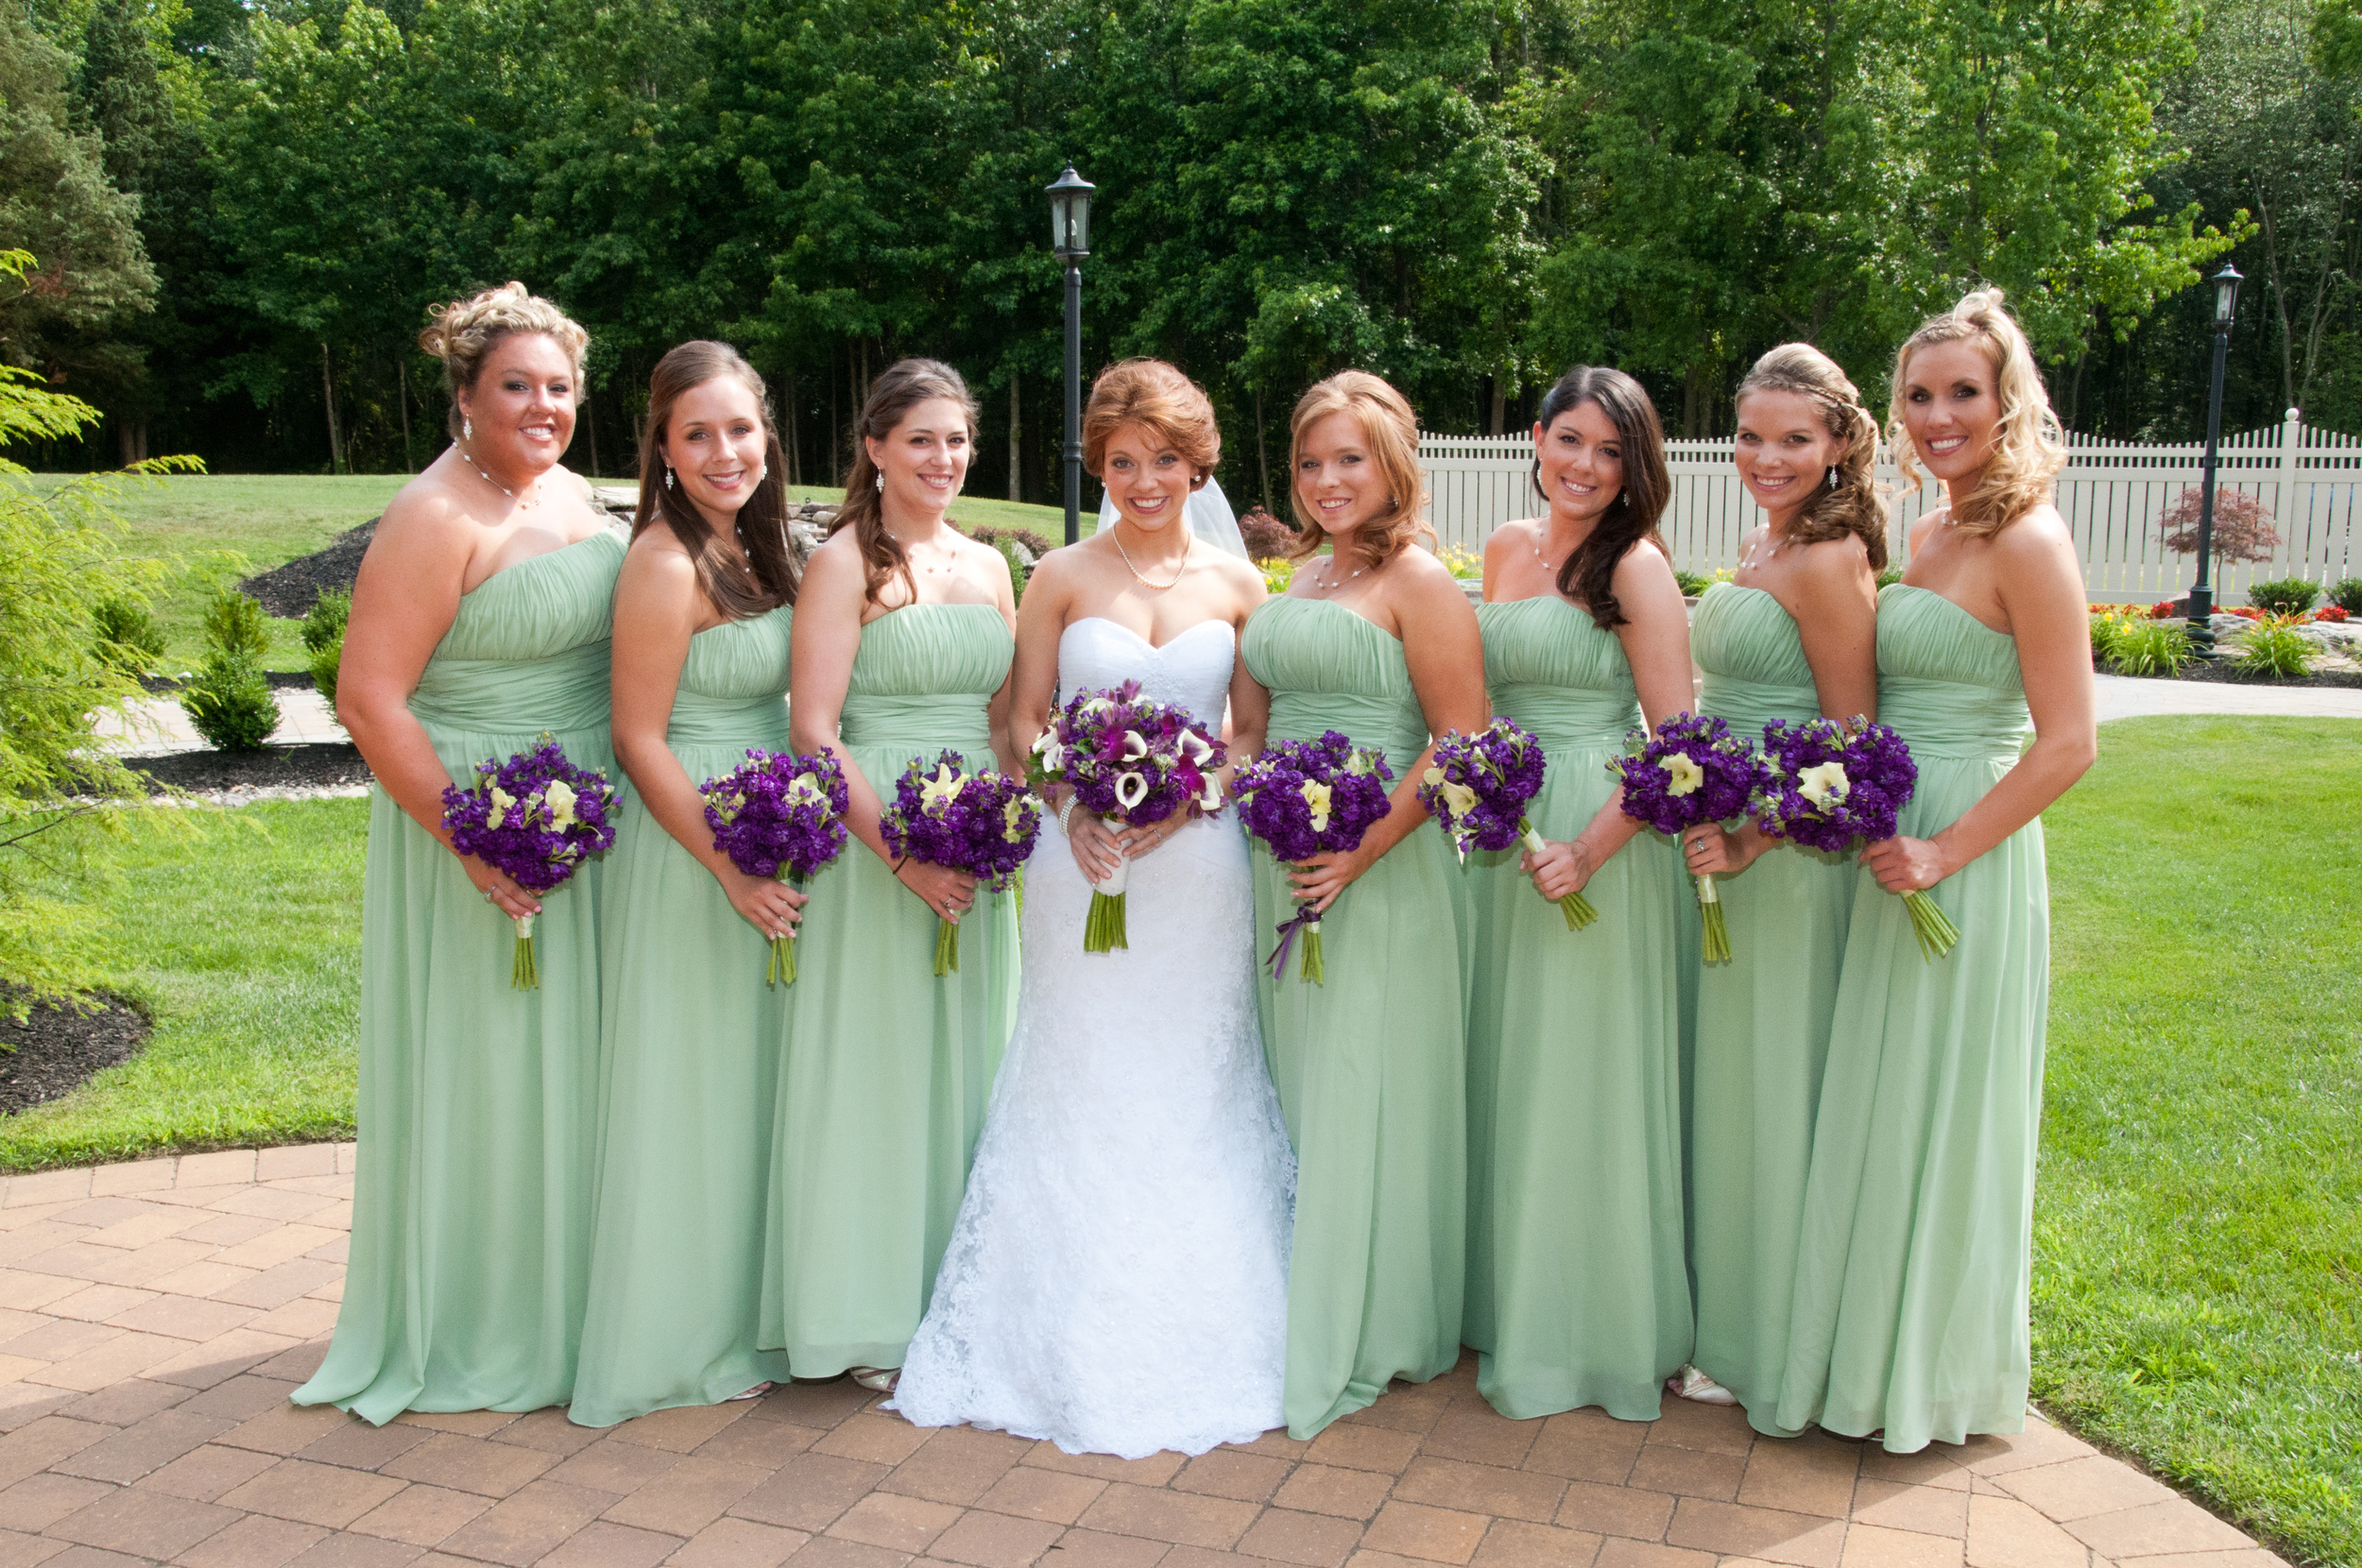 South jersey florist megan and daniel at brigalias a garden party i love the bridesmaids pistachio gowns the purple bouquets look great against the green the girls carried bouquets of purple stock and green gladiola ombrellifo Images